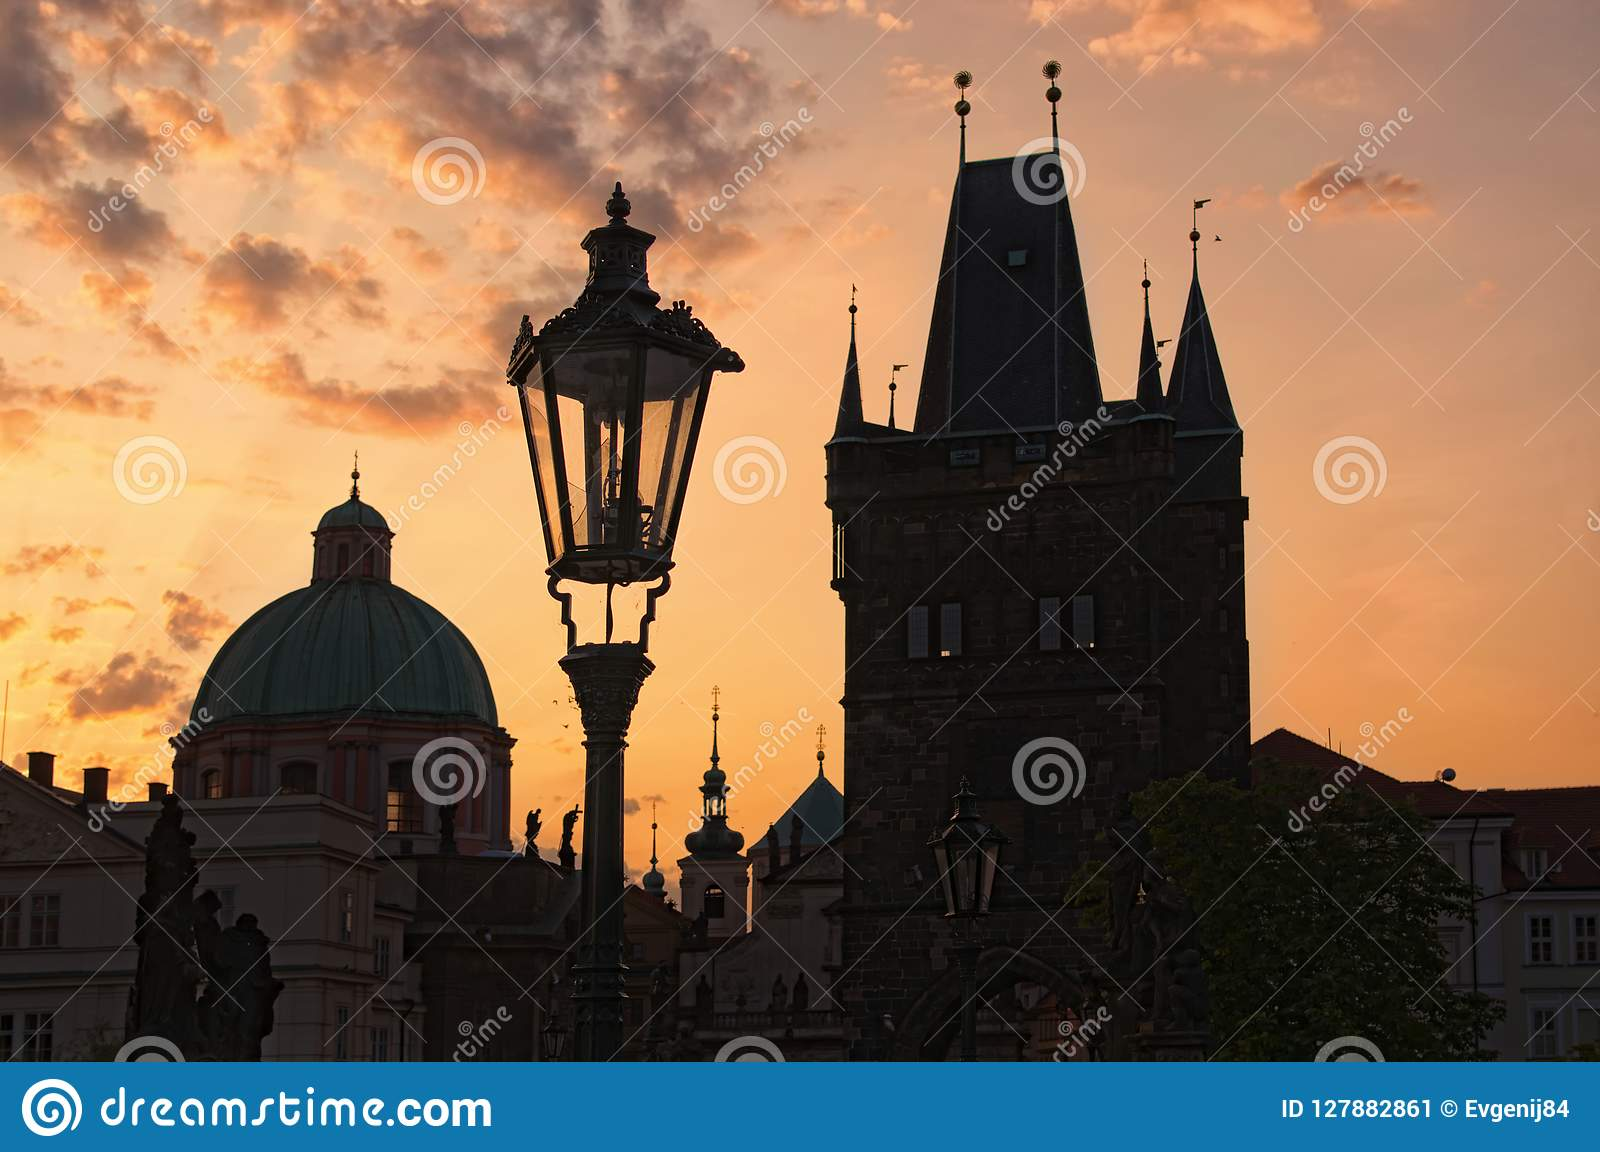 Stunning cityscape of Charles Bridge during sunrise. Statues on Charles Bridge, lanterns and Old Town Bridge Tower.